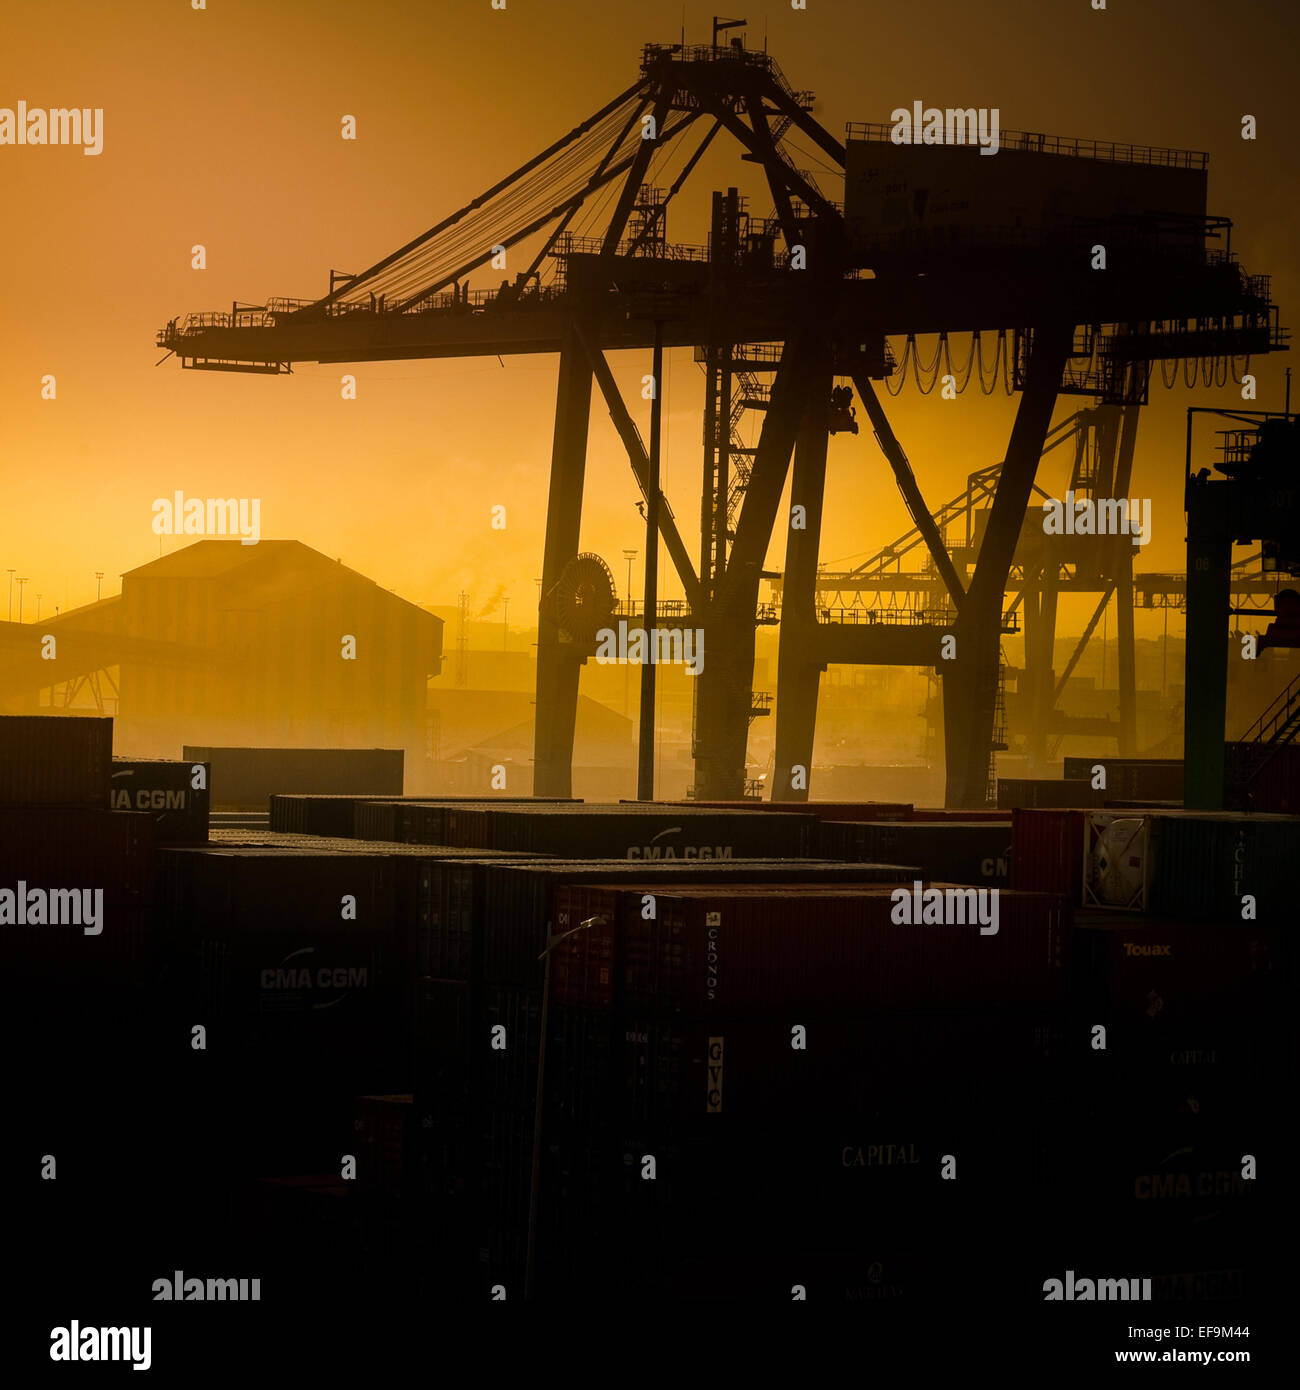 Orange tinted view of Casablanca dockyard,square format - Stock Image